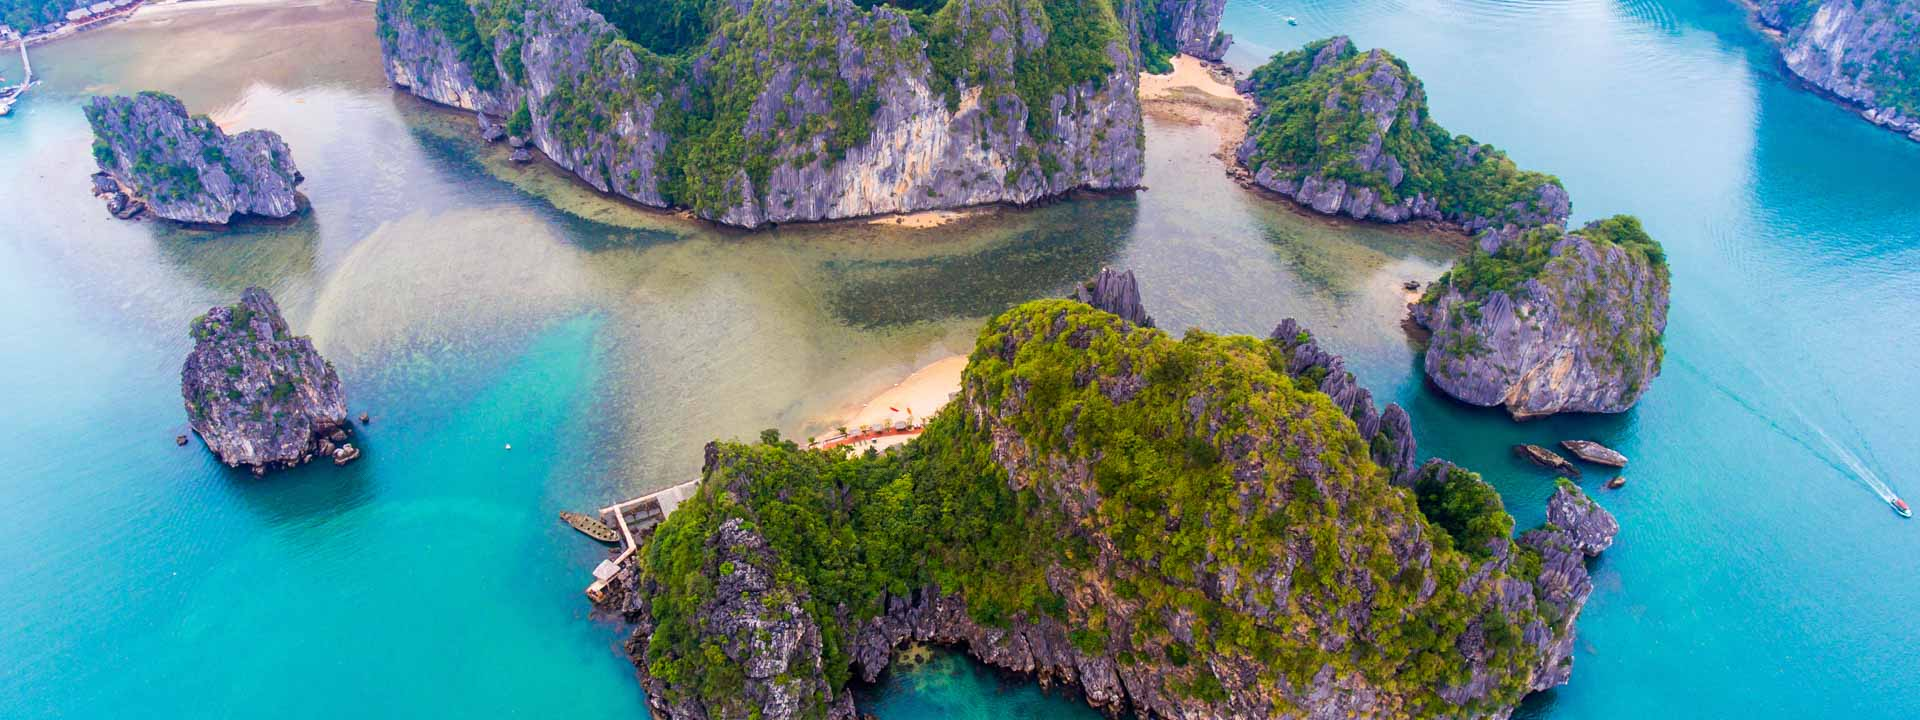 Vietnam Cambodia tour 25 days